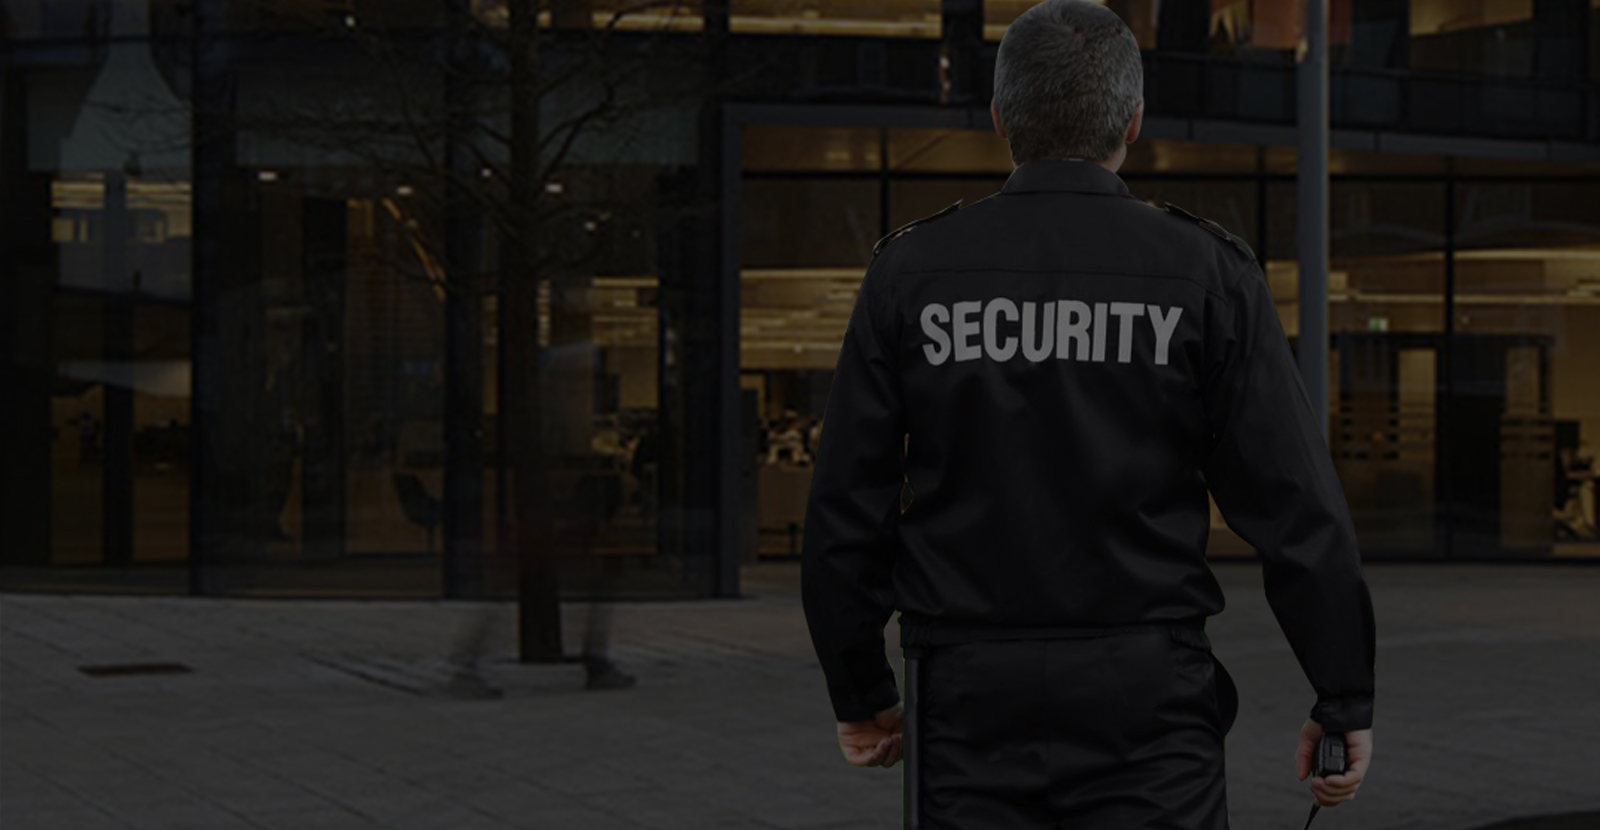 Security Services Ireland